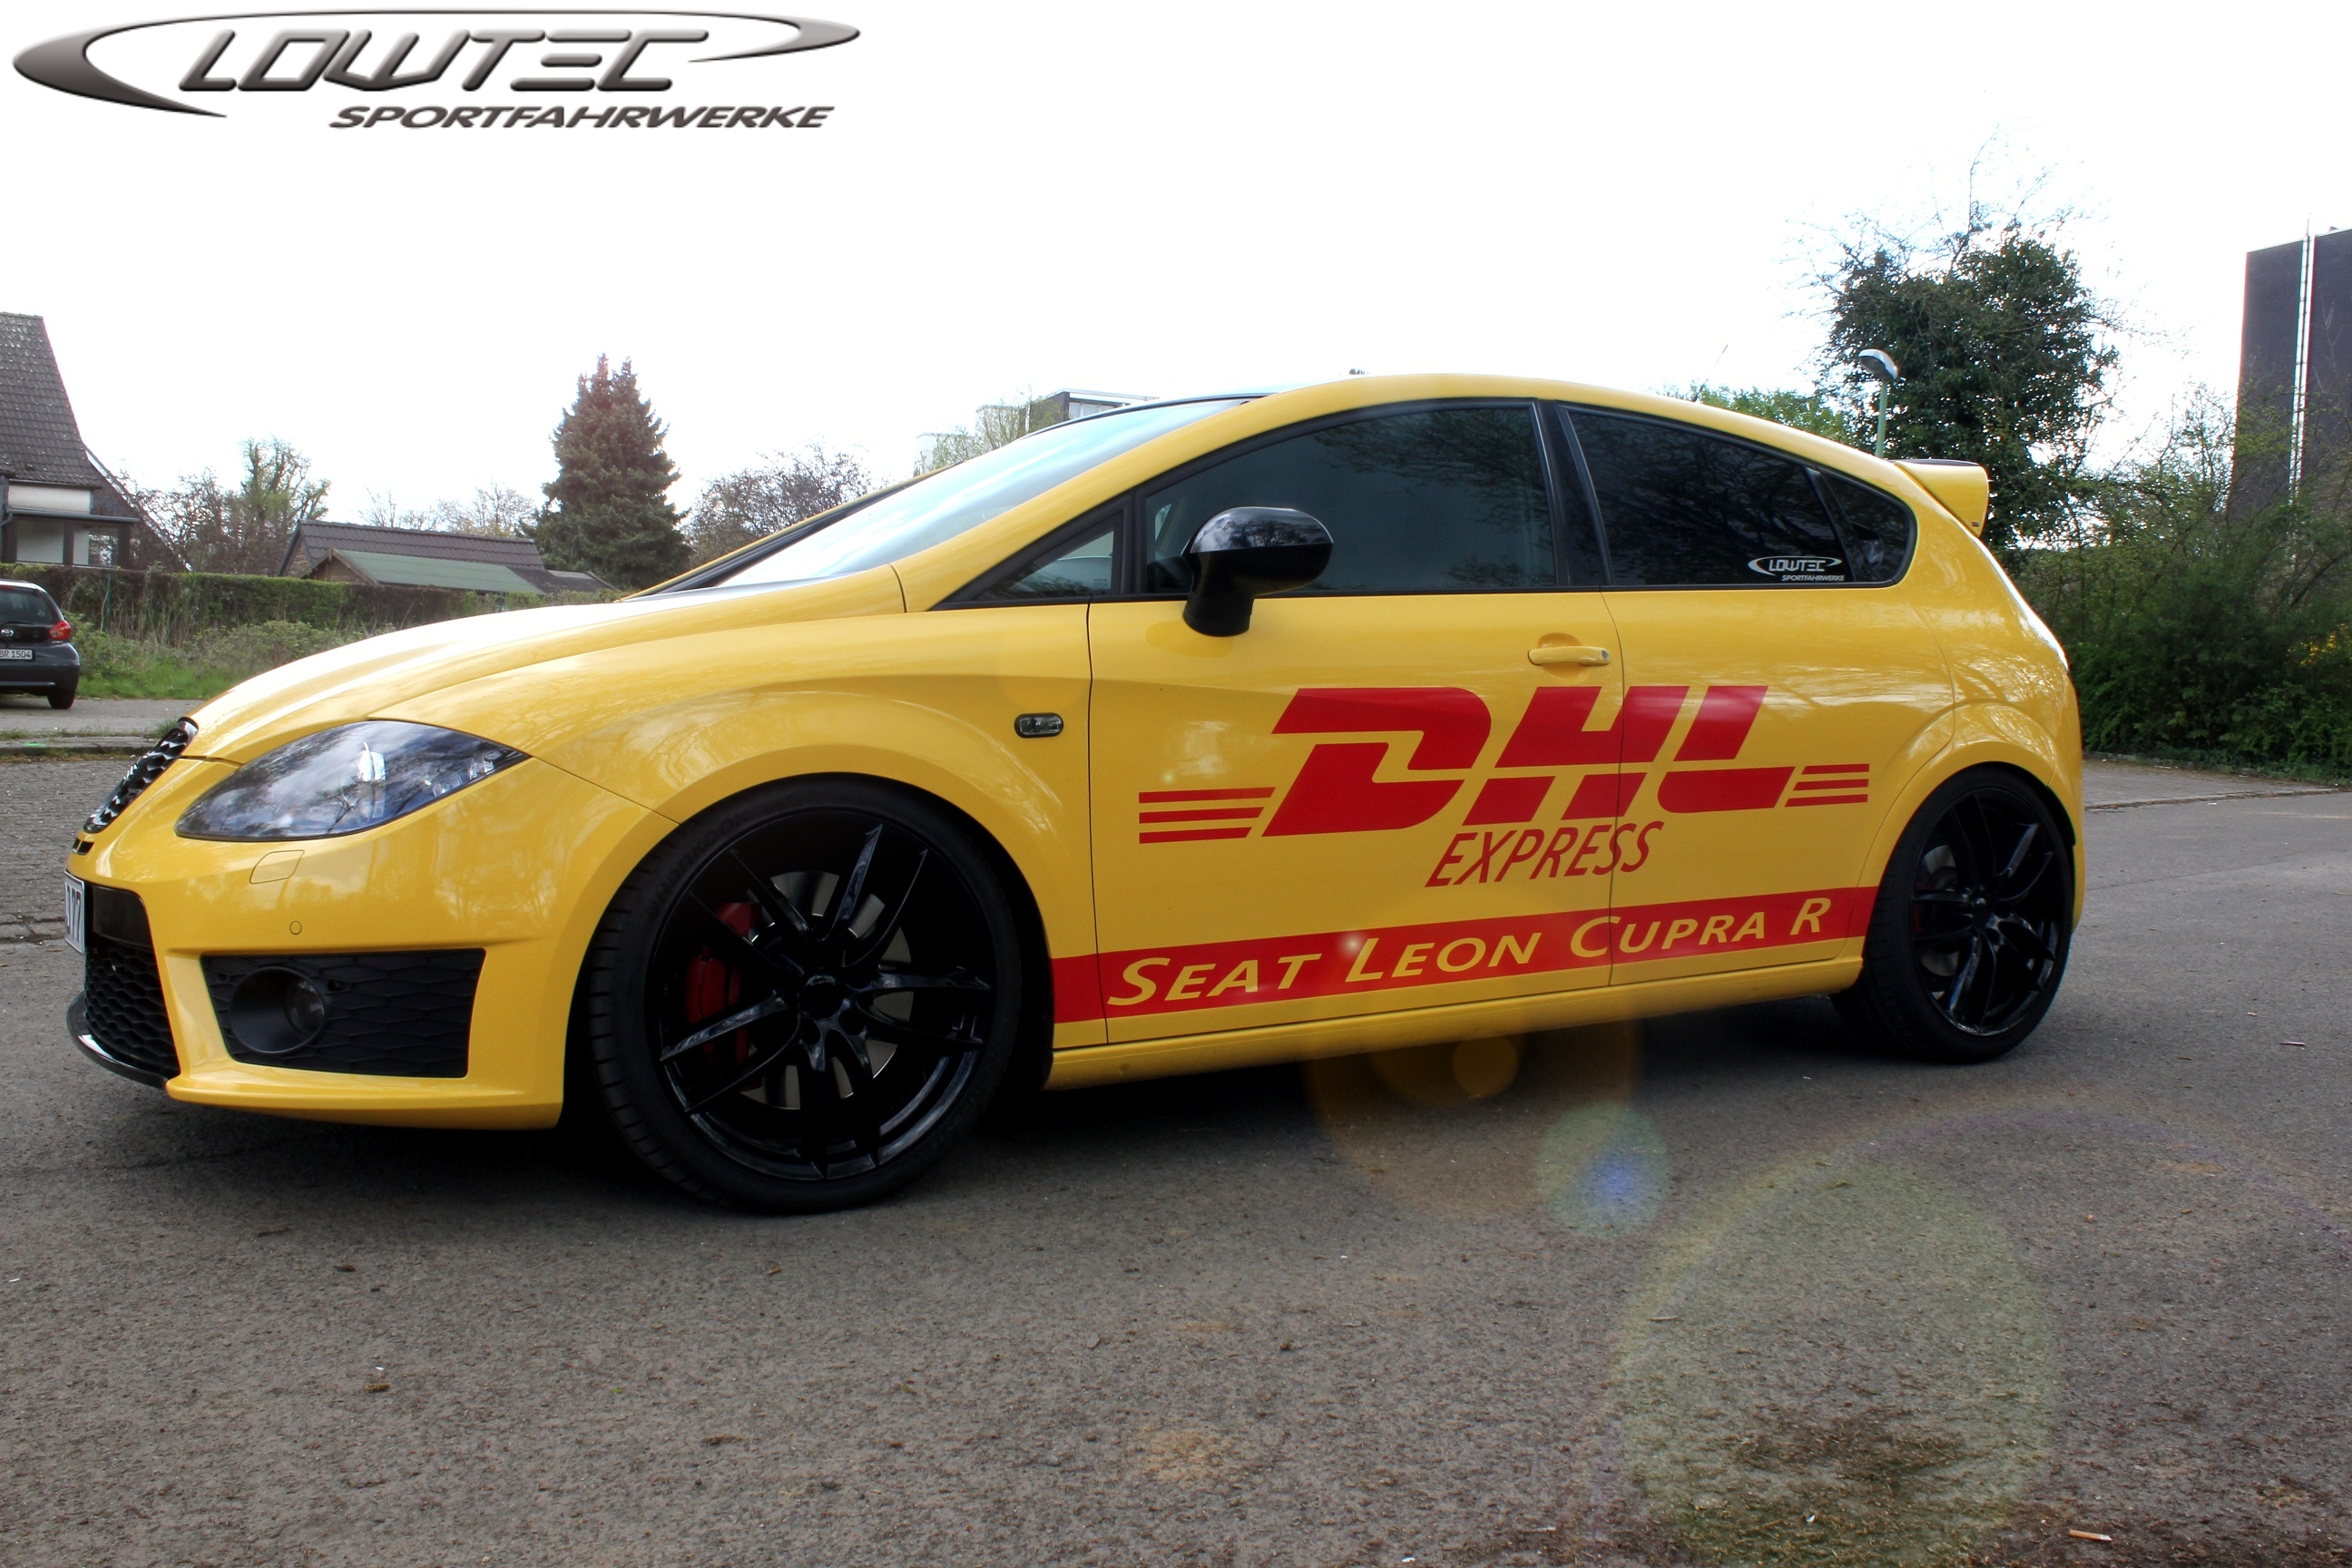 seat leon cupra r gallery sj lowtec gmbh. Black Bedroom Furniture Sets. Home Design Ideas